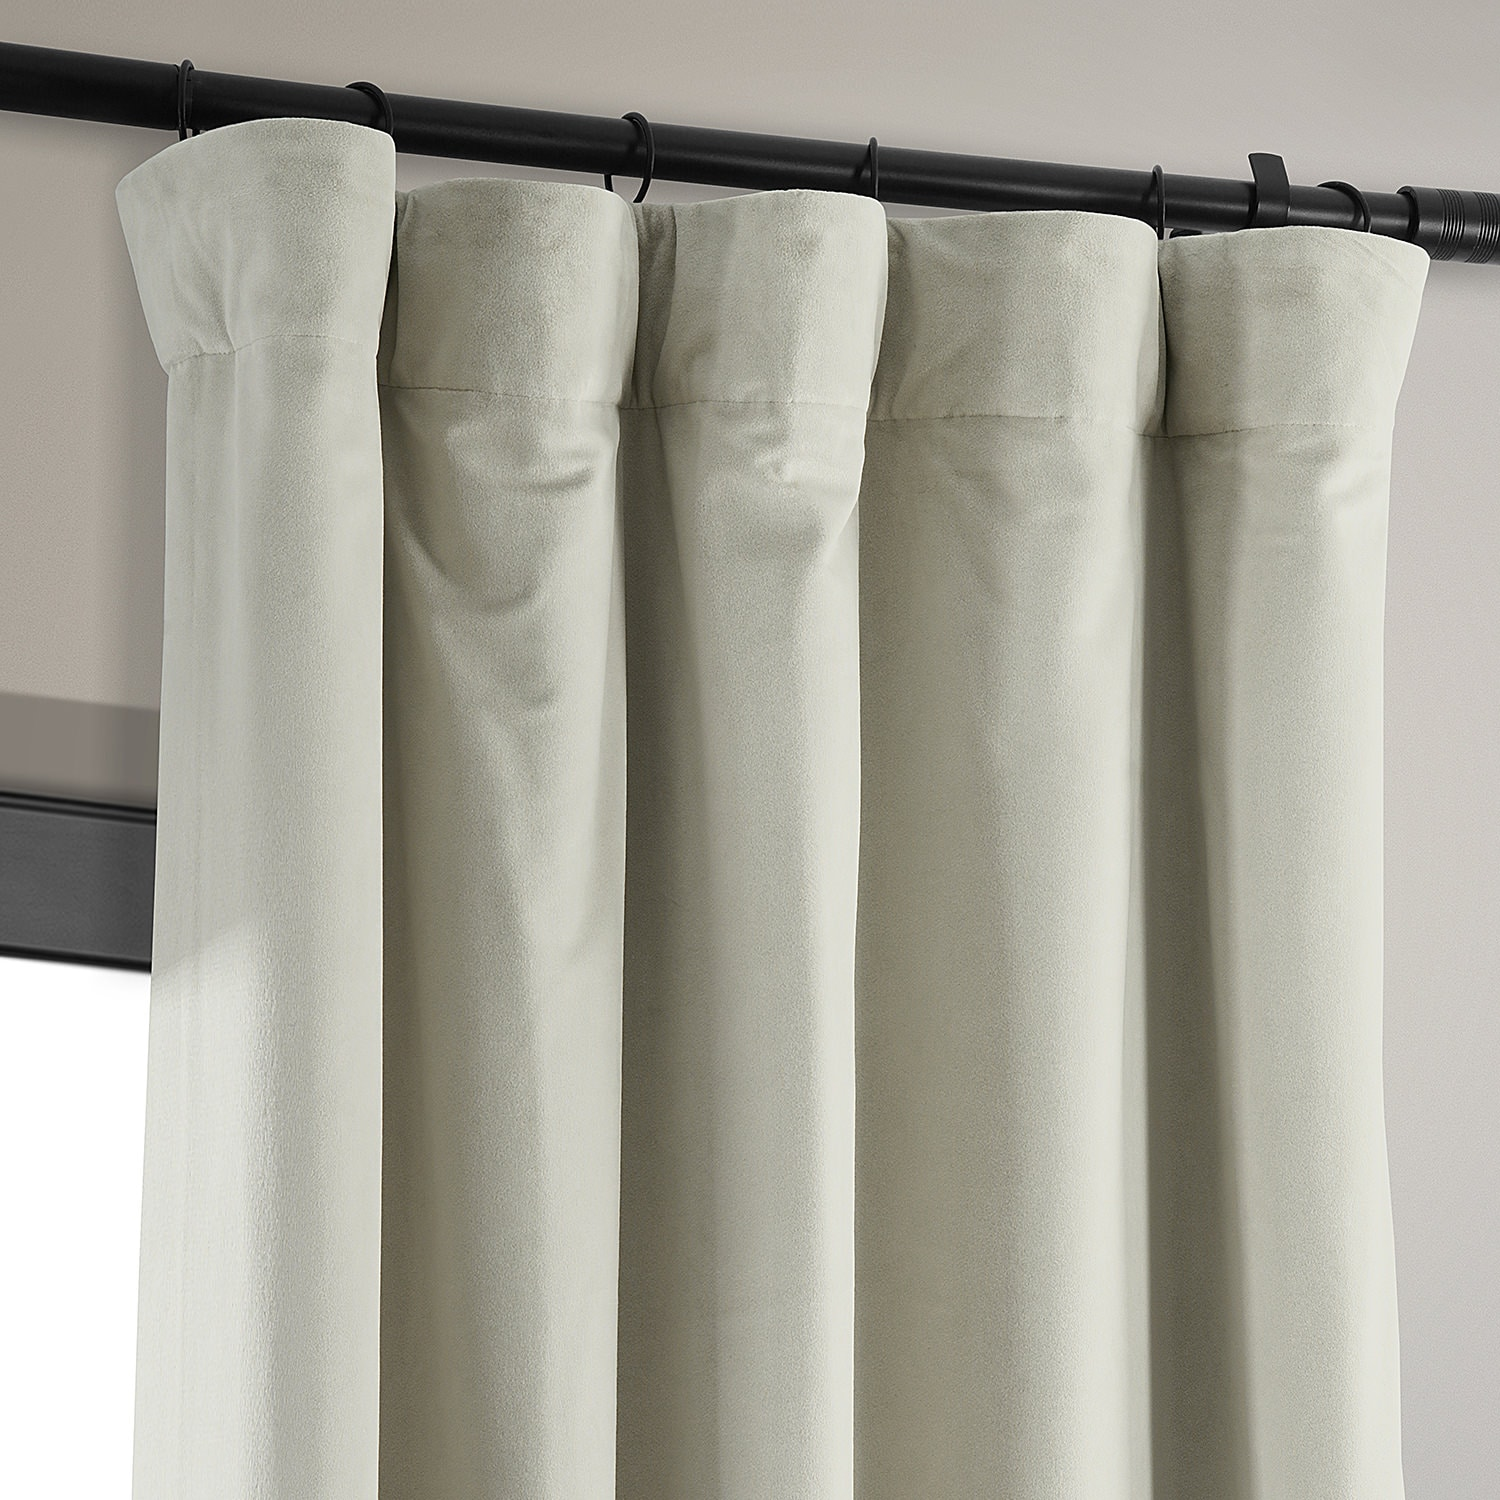 Spotlight Eyelet Curtains Sun Blocking Curtains South Africa Flisol Home